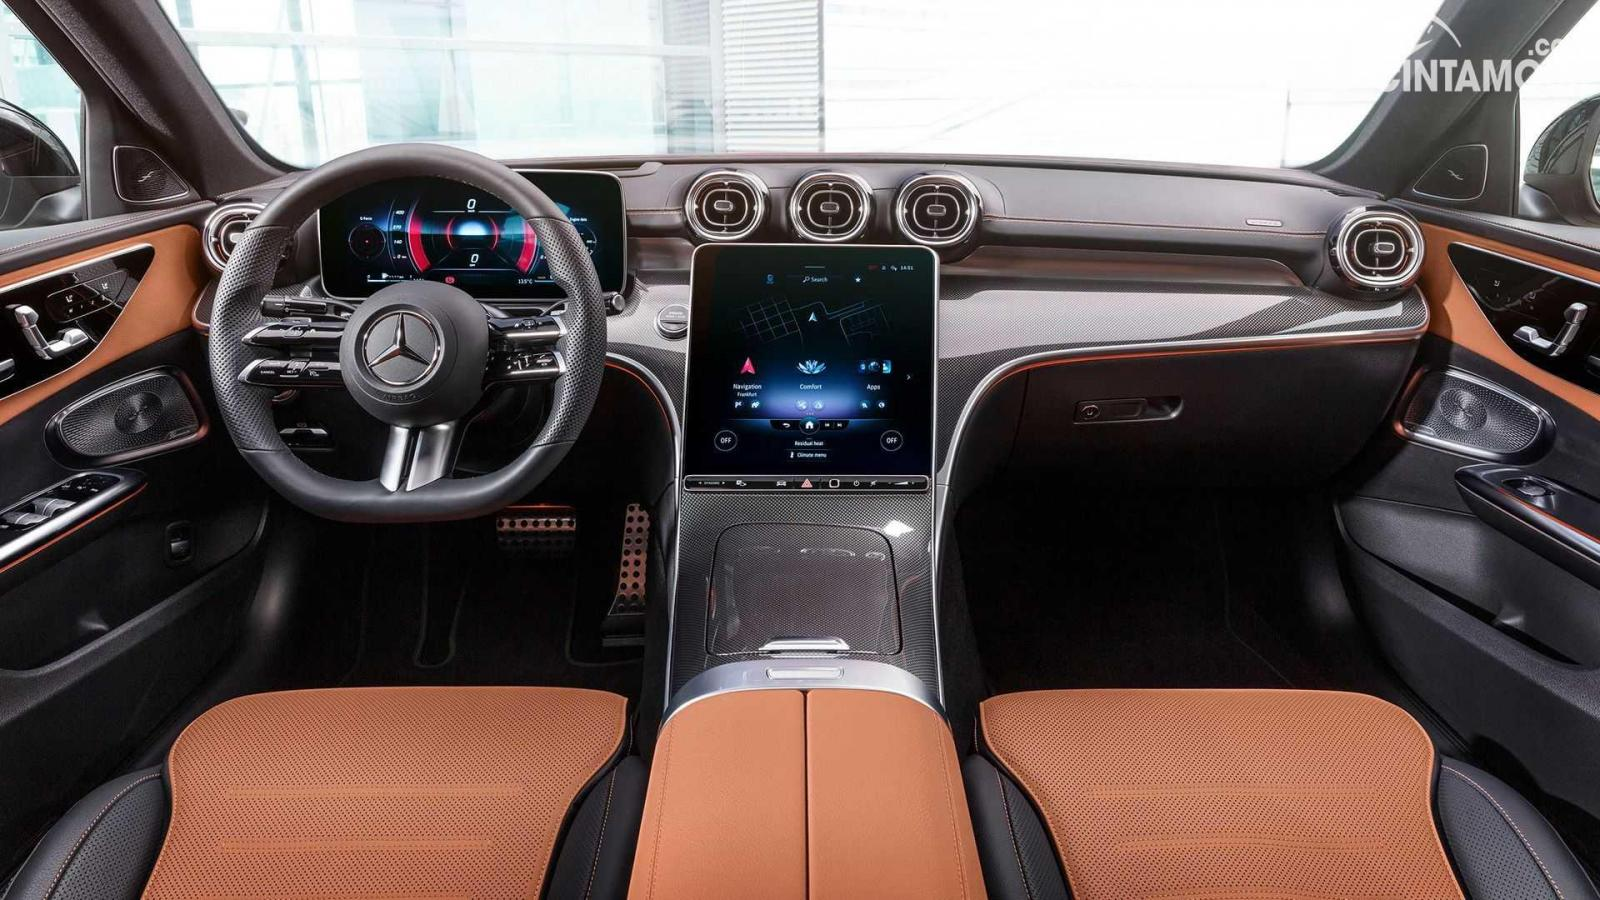 Dashboard Mercedes-Benz C-Class 2021 berwarna hitam